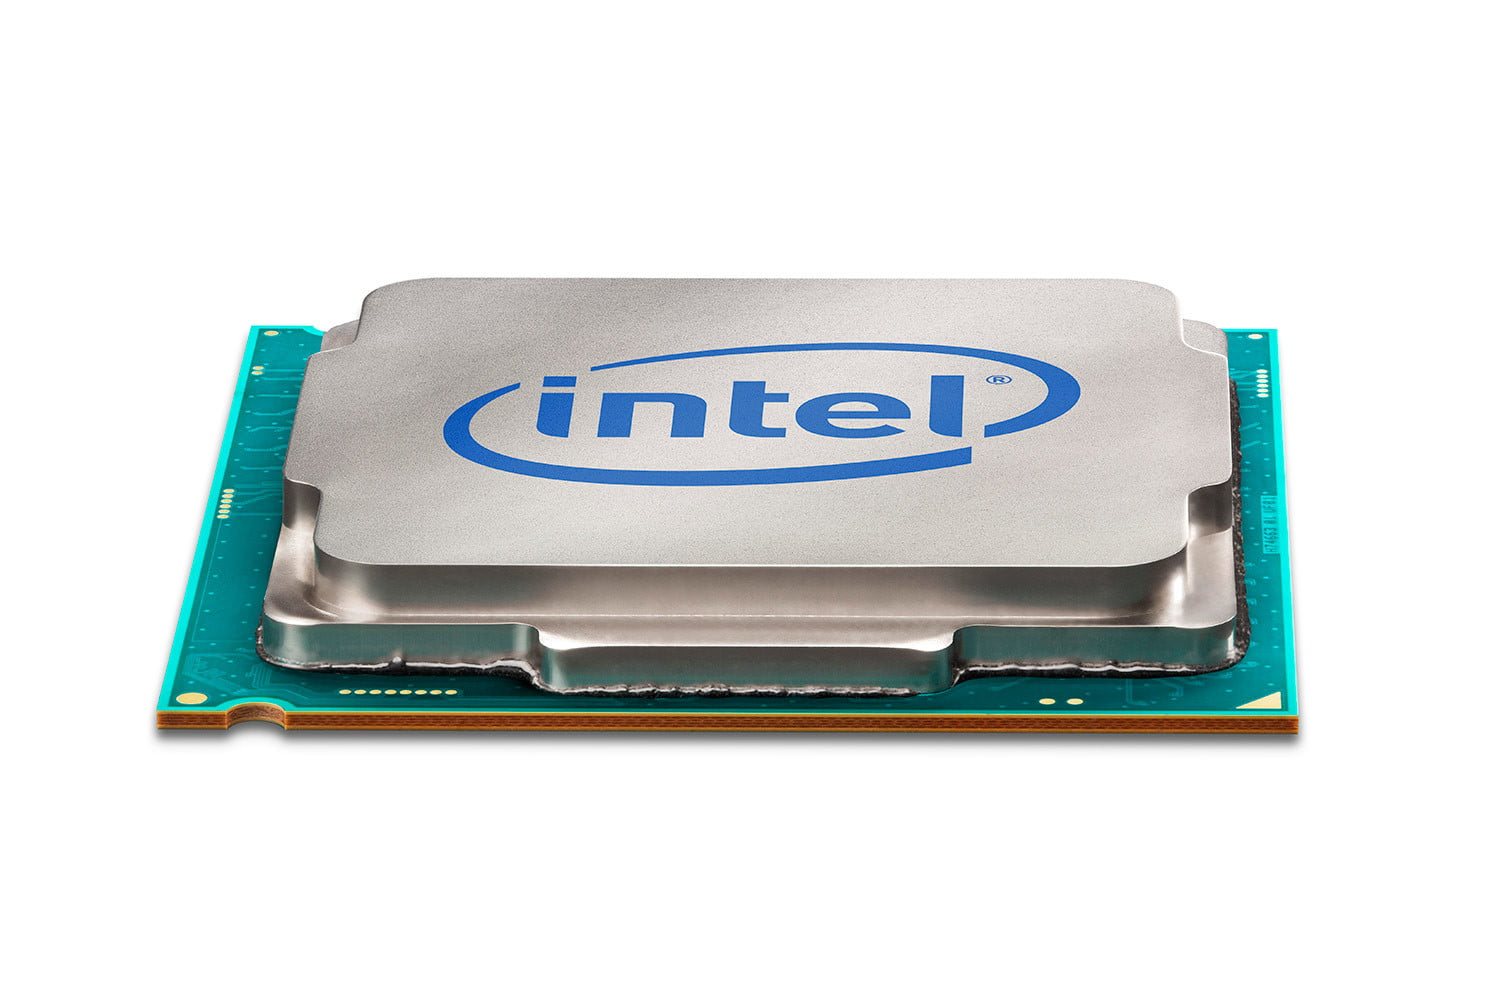 7th generation intel core ces 2017 kby lake s persp front low 05 whitebkg